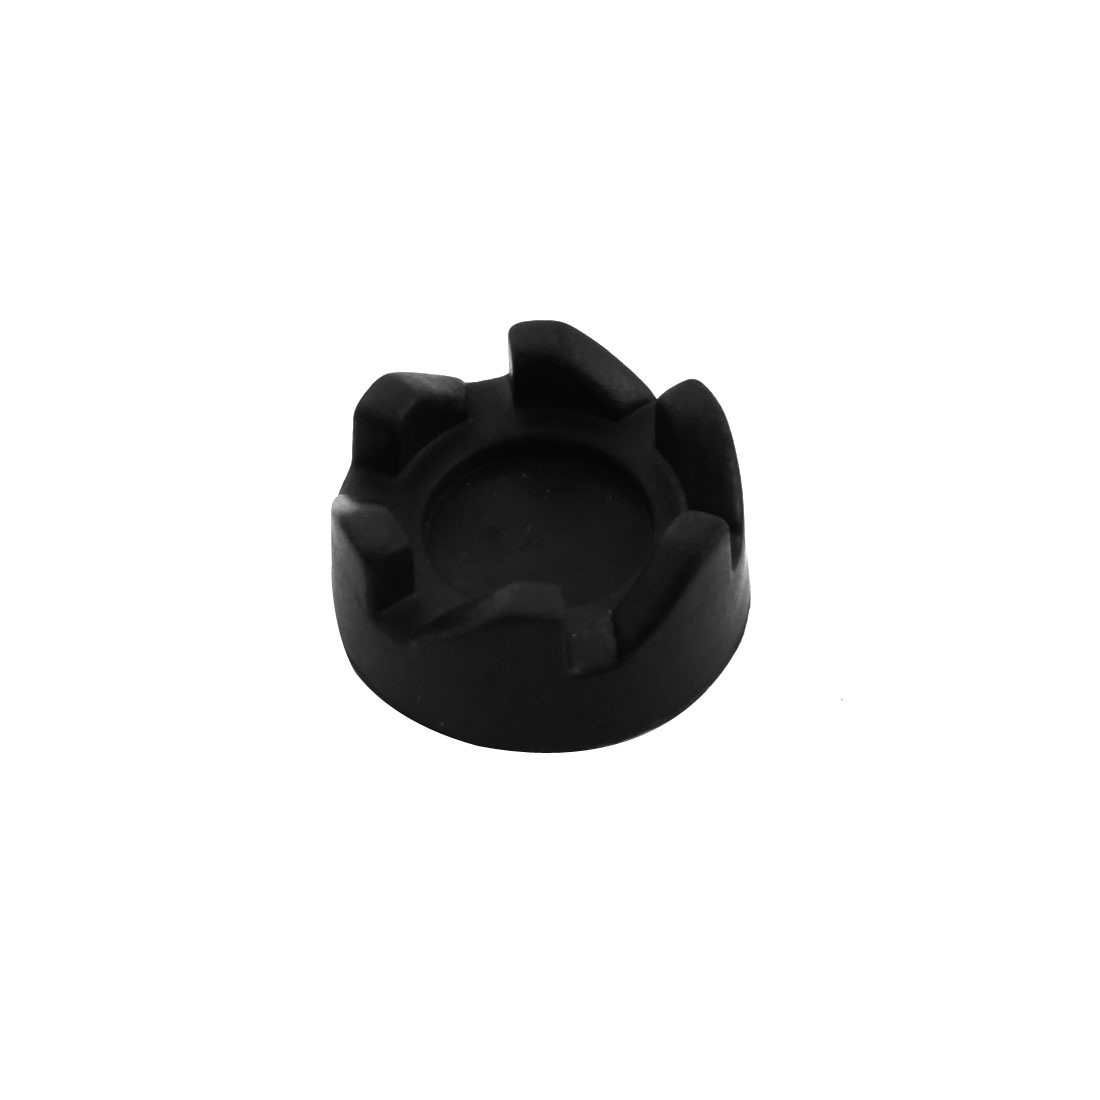 34mmx4mm 6-Teeth Electric Blender Rubber Rubber Coupler Drive Clutch Black